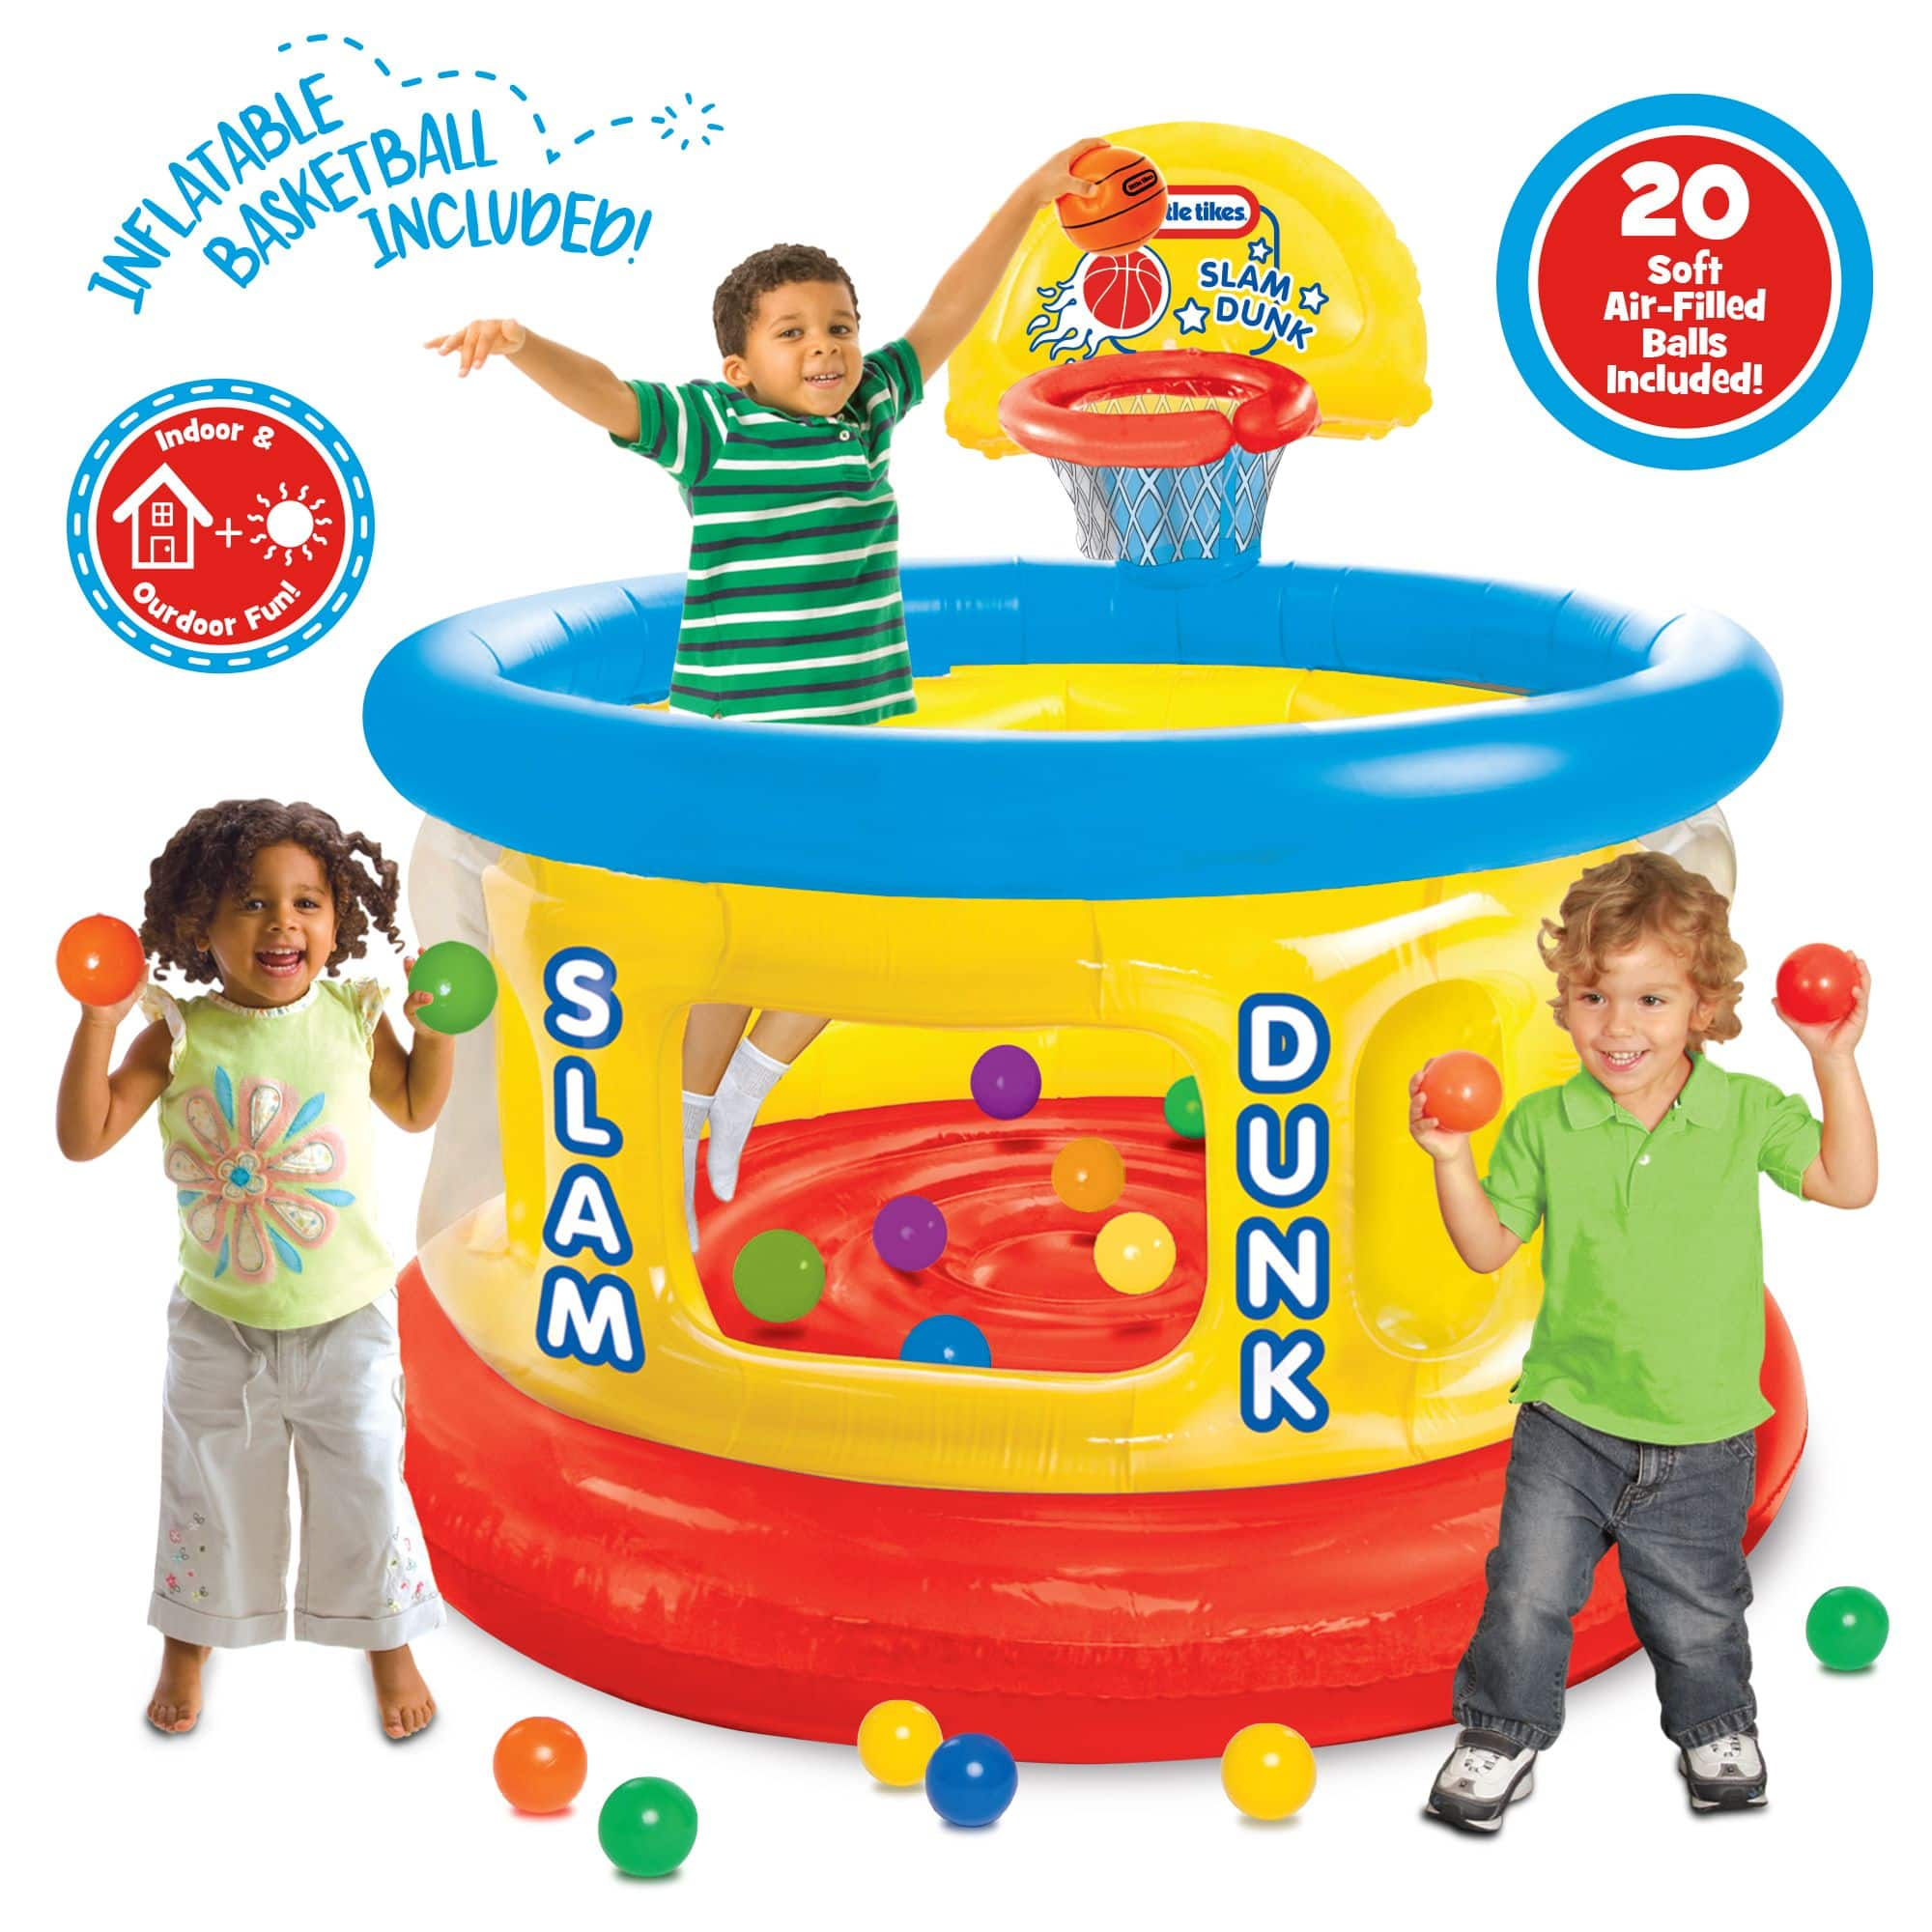 Little Tikes Slam Dunk Inflatable Big Ball Pit $34.99 at Walmart